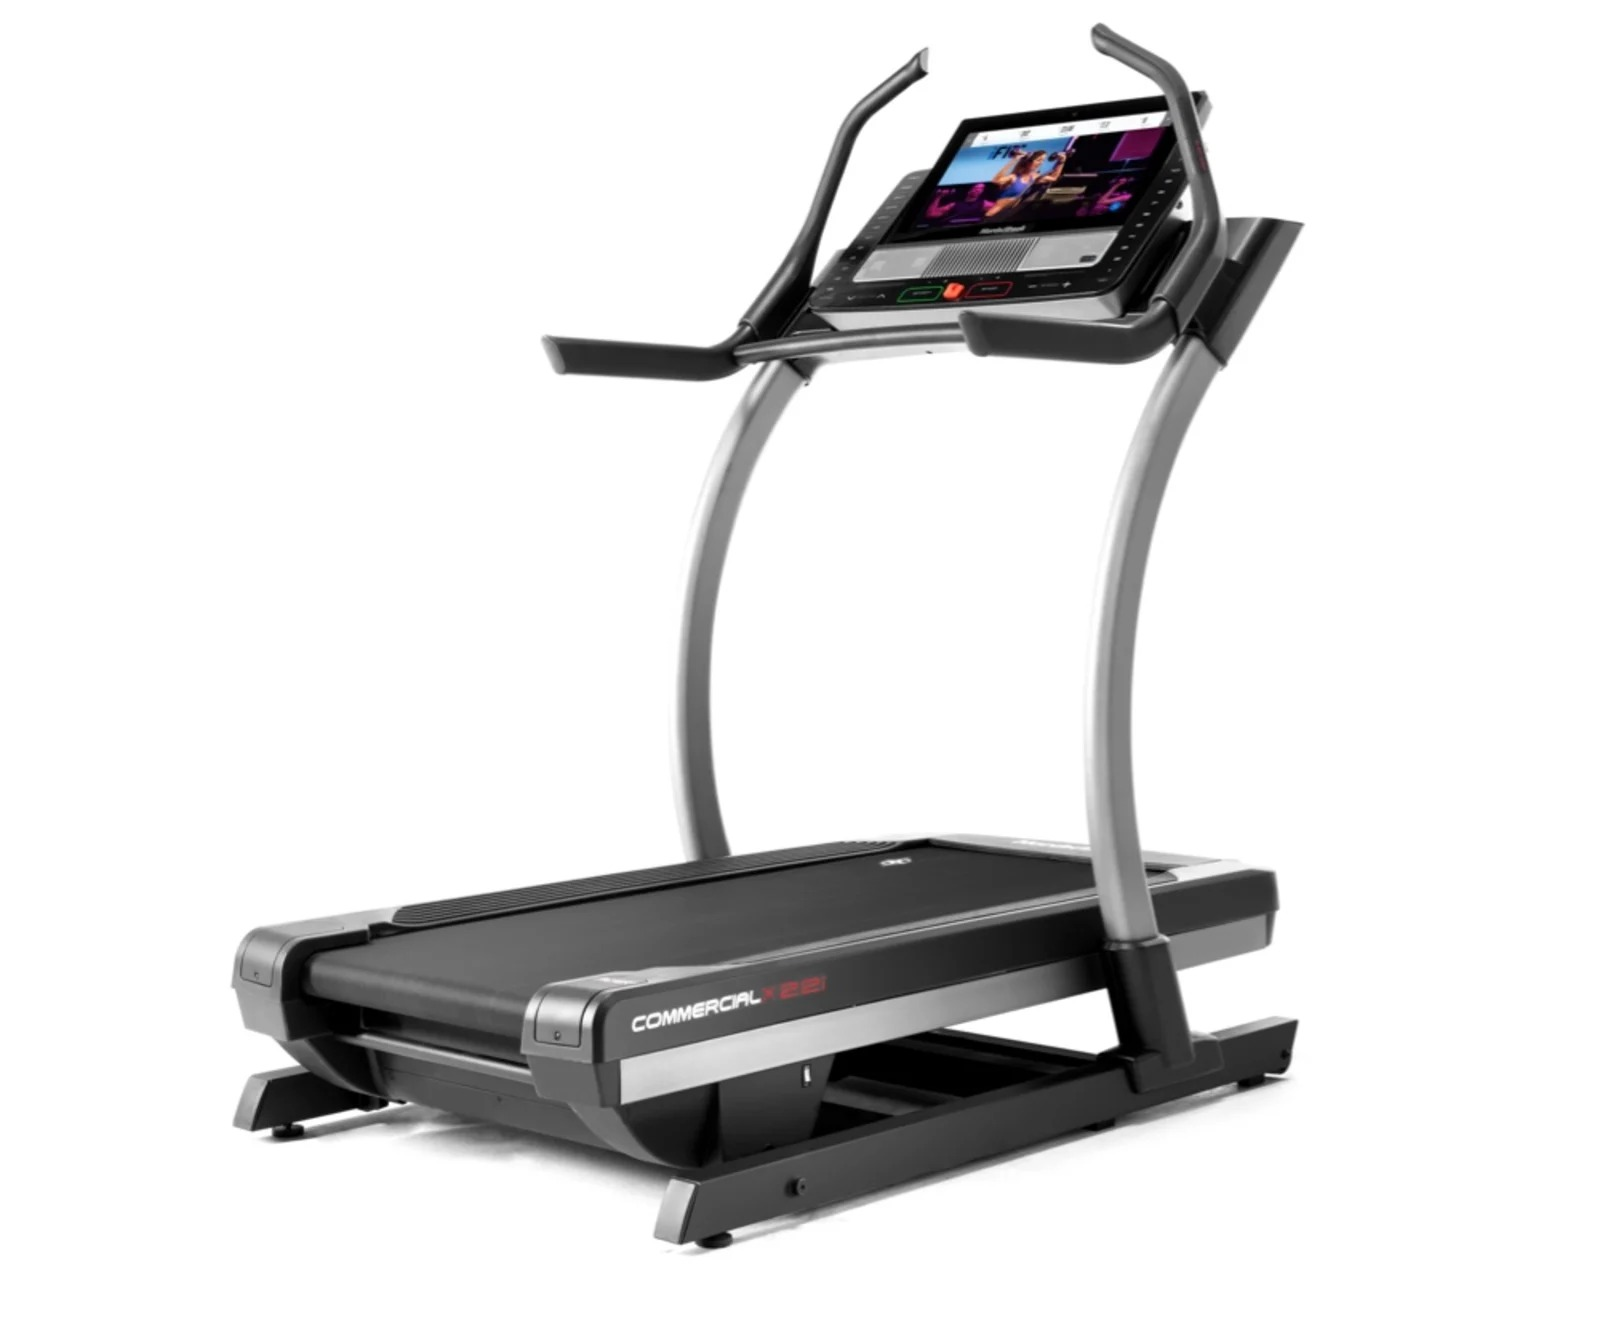 NordicTrack treadmill, best smart home gym